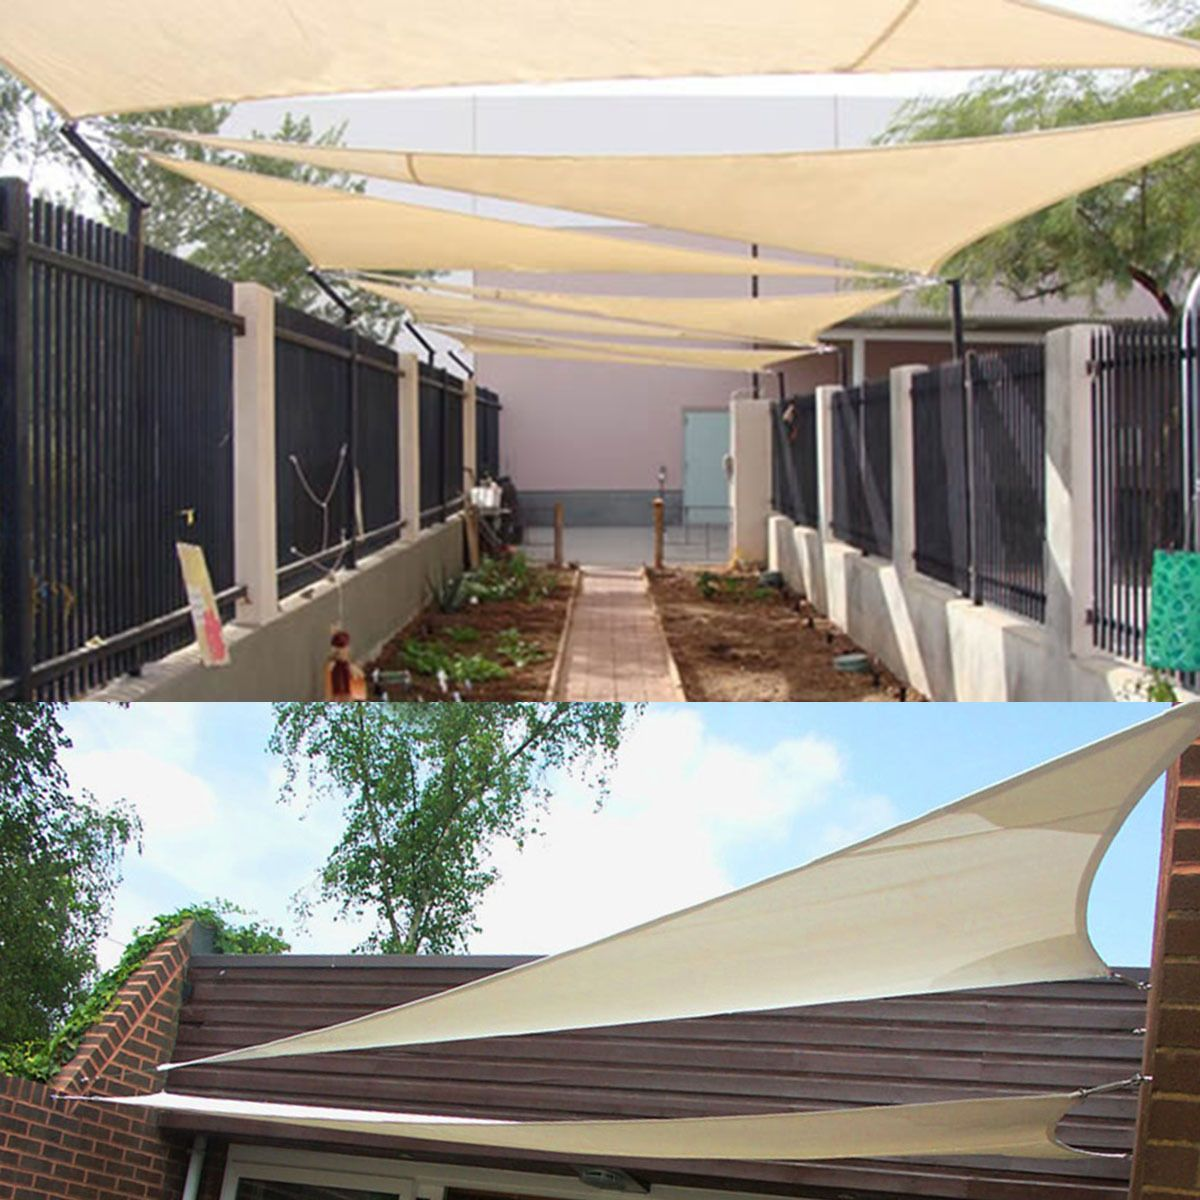 11 8 16 4 Triangle Sun Shade Sail Uv Top Outdoor Canopy Patio Lawn Cover Pool